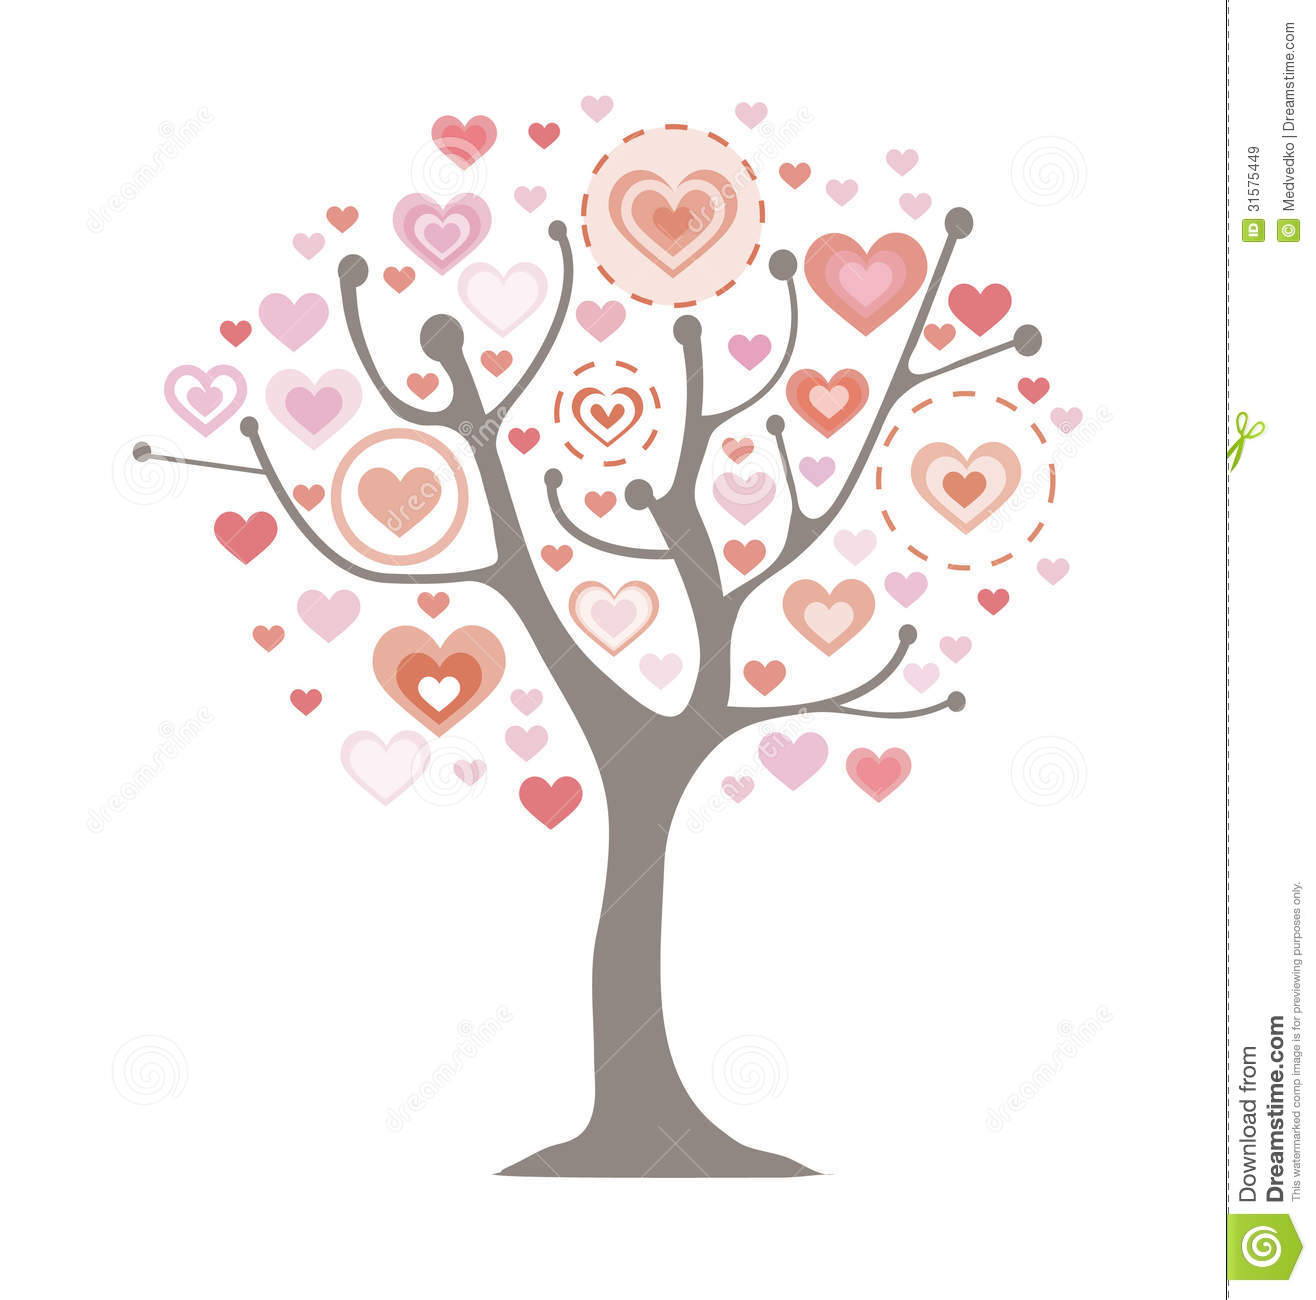 Tree Of Love Royalty Free Stock Images - Image: 31575449